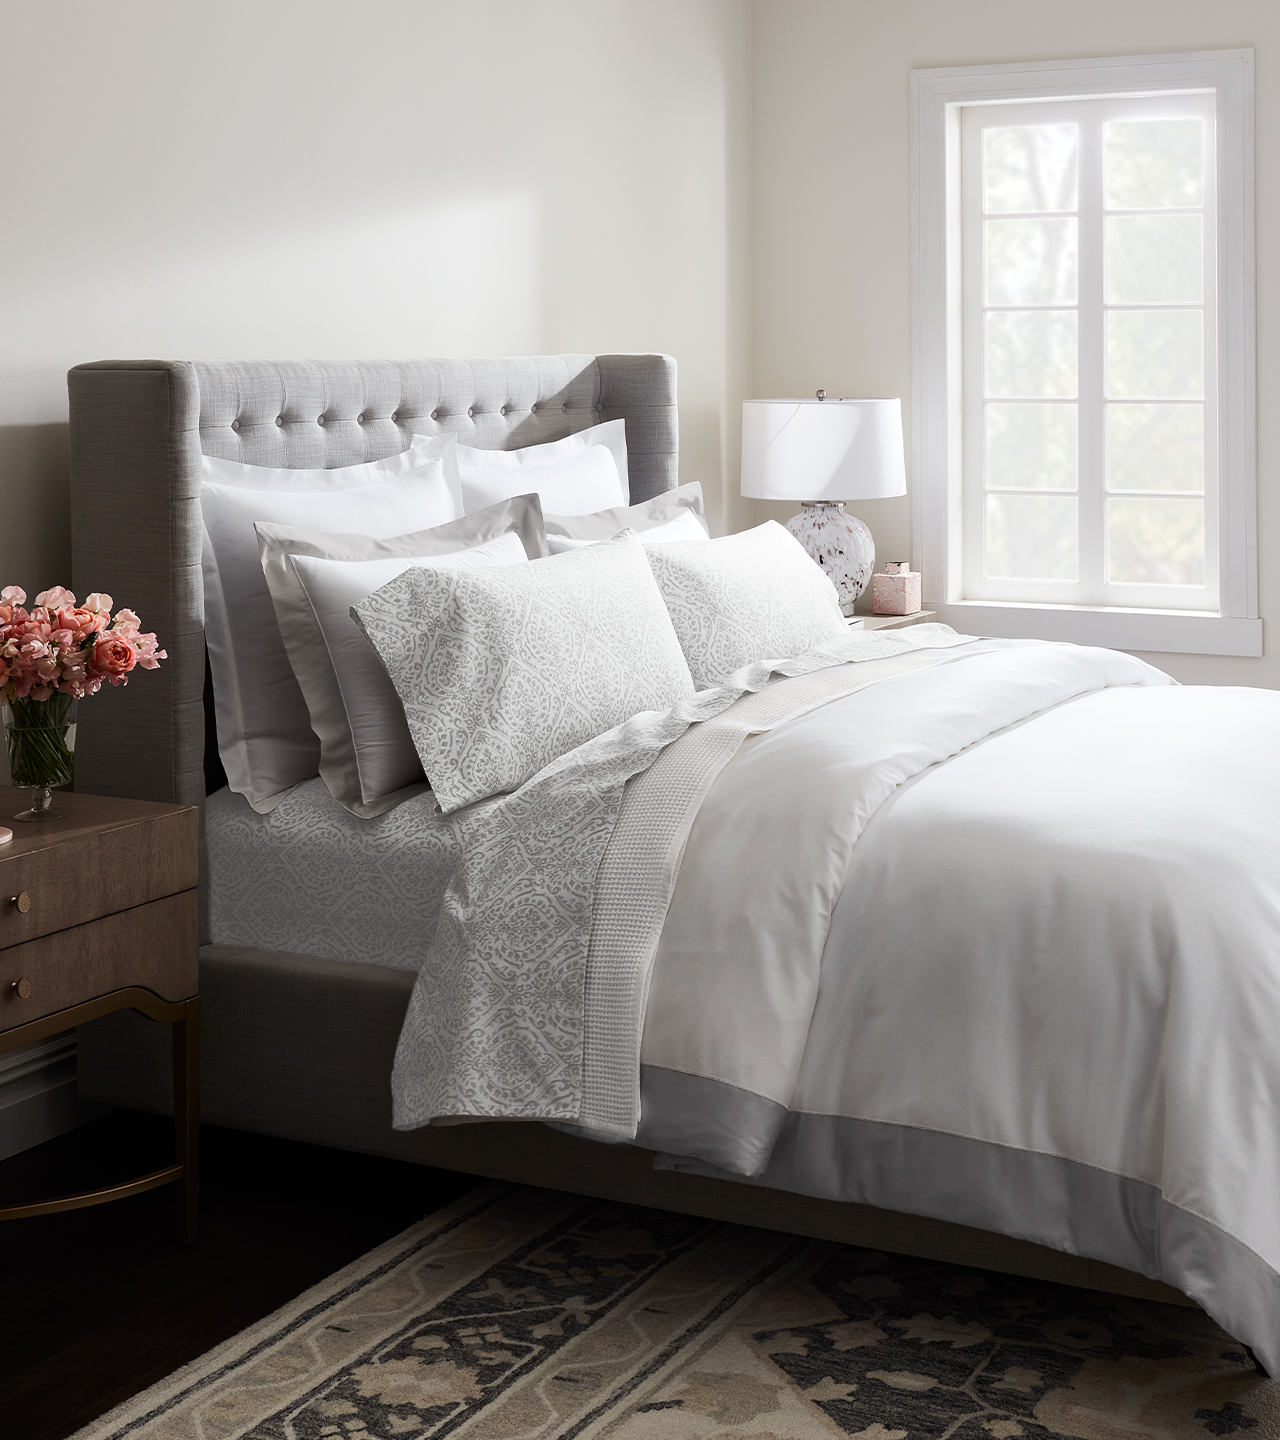 Side shot of bed with white sheets